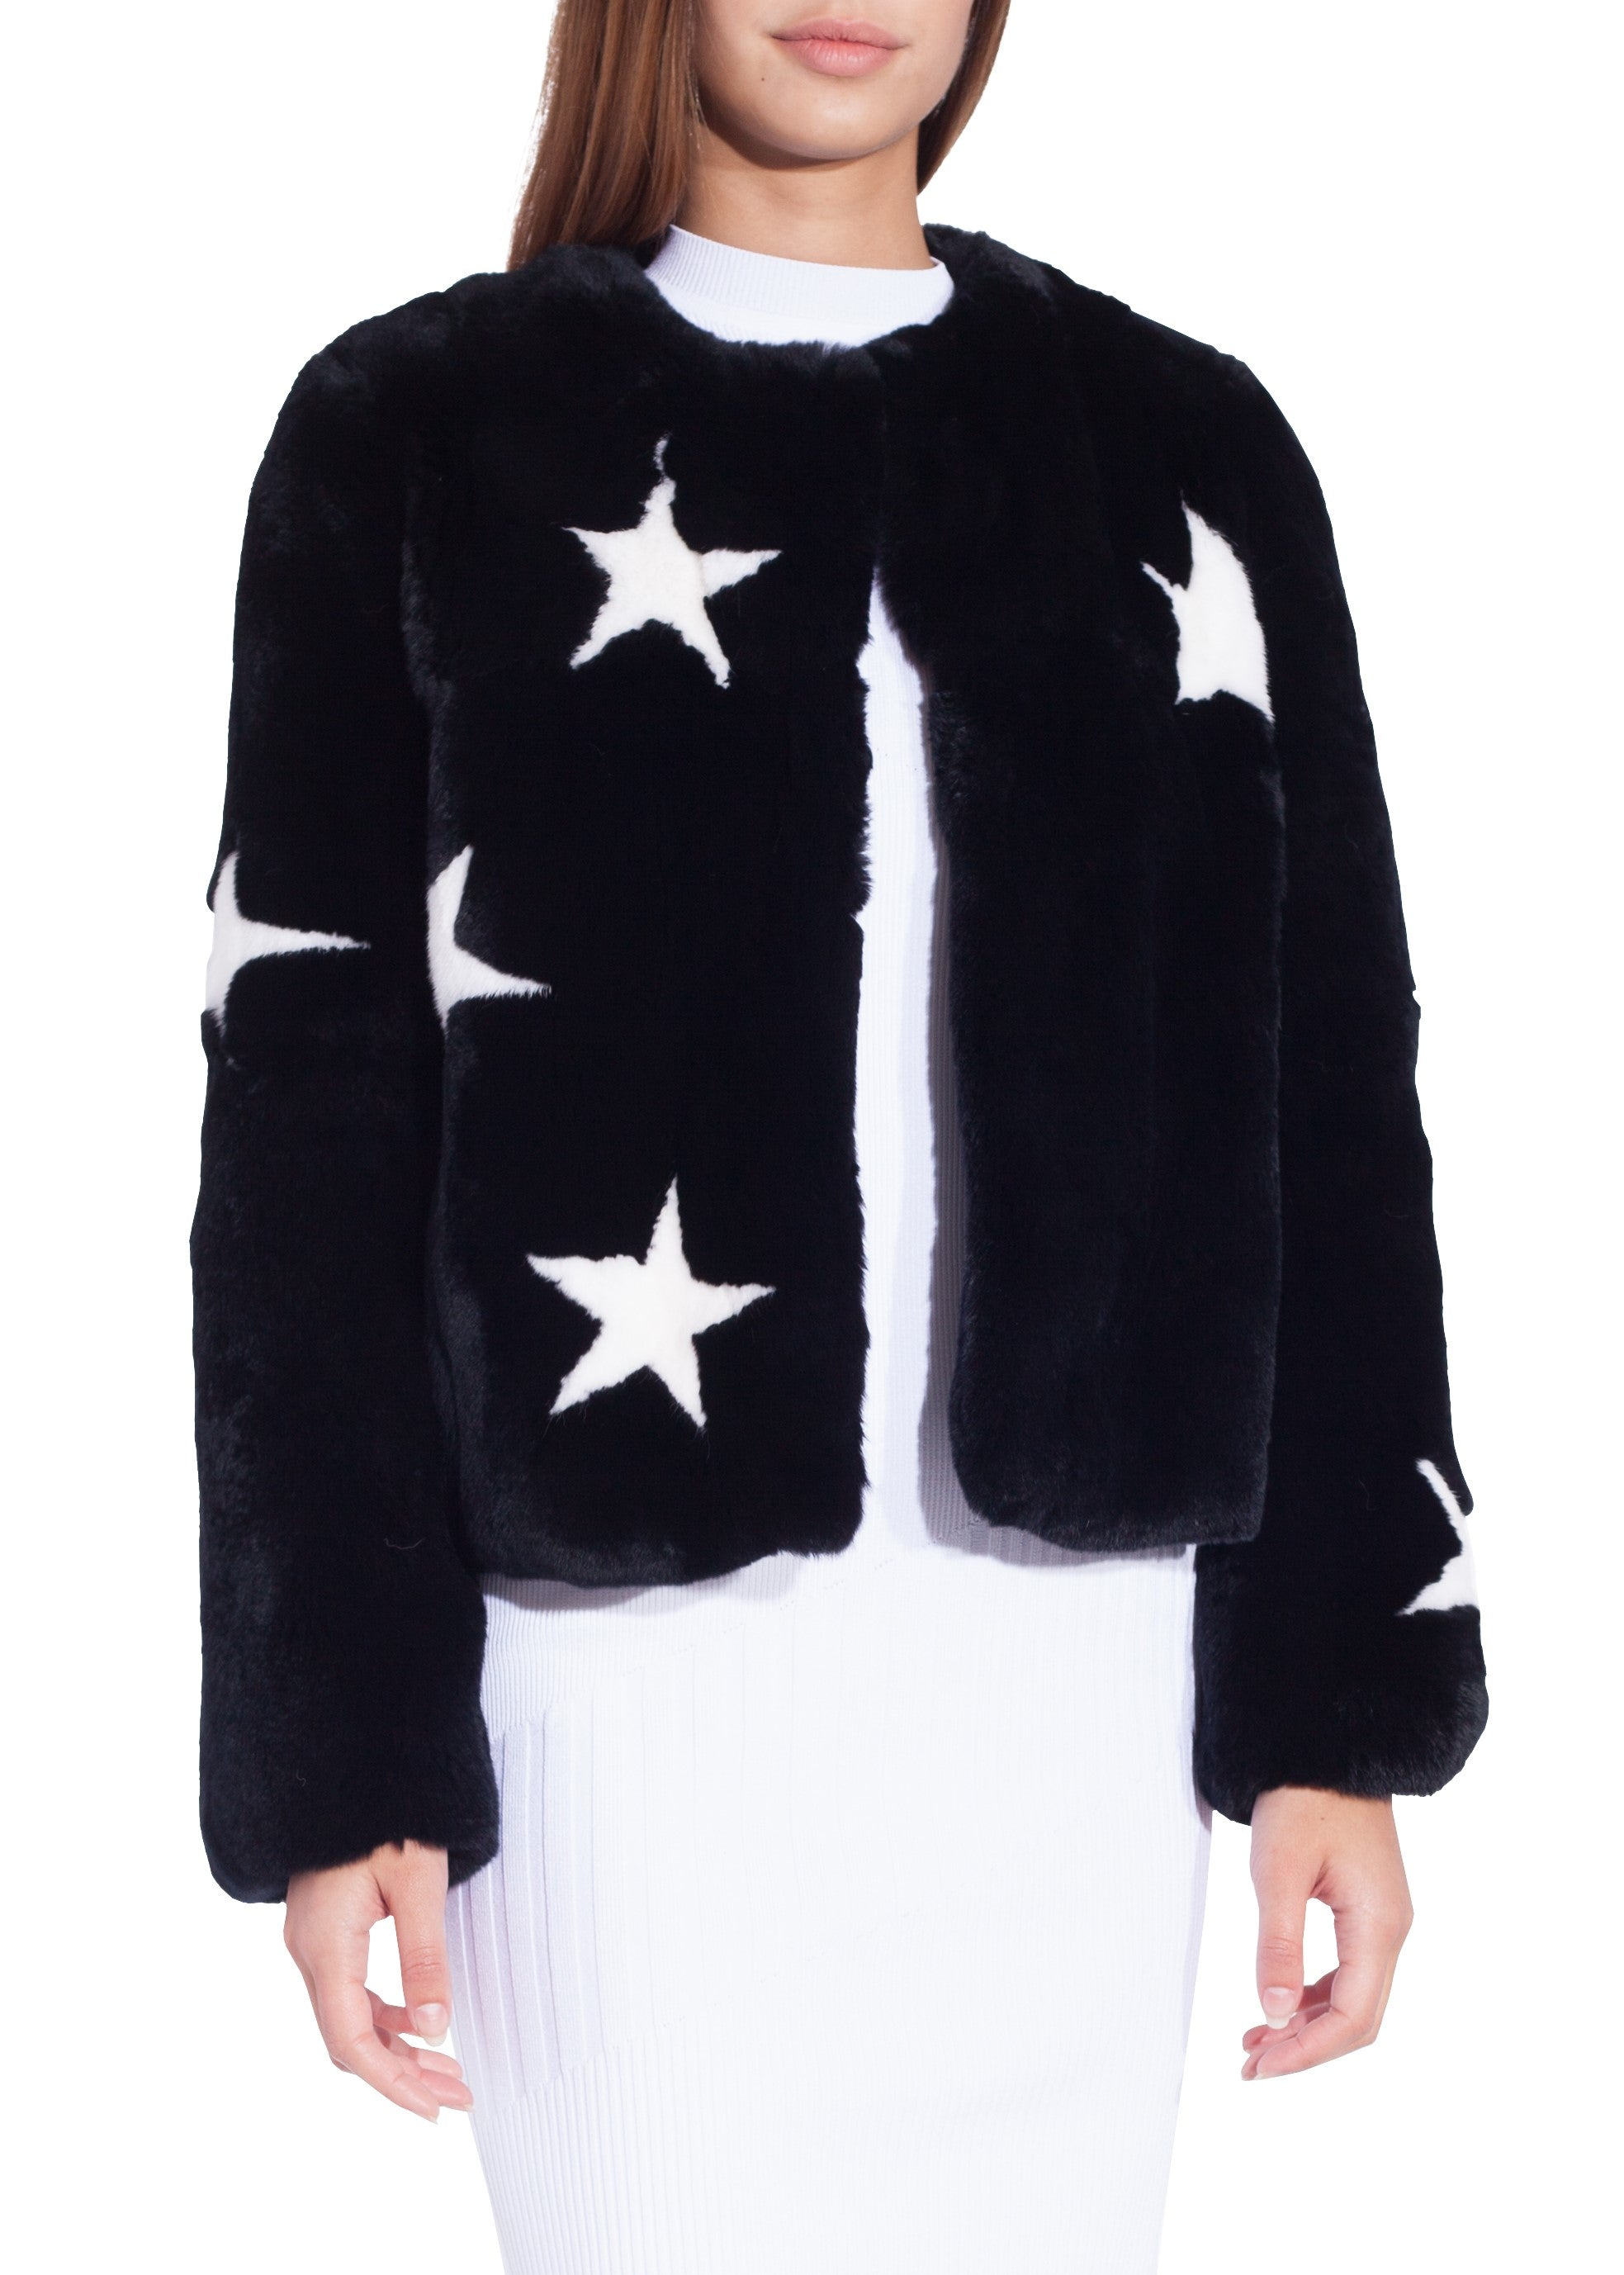 Yves Salomon Meteo rex fur jacket black with white stars